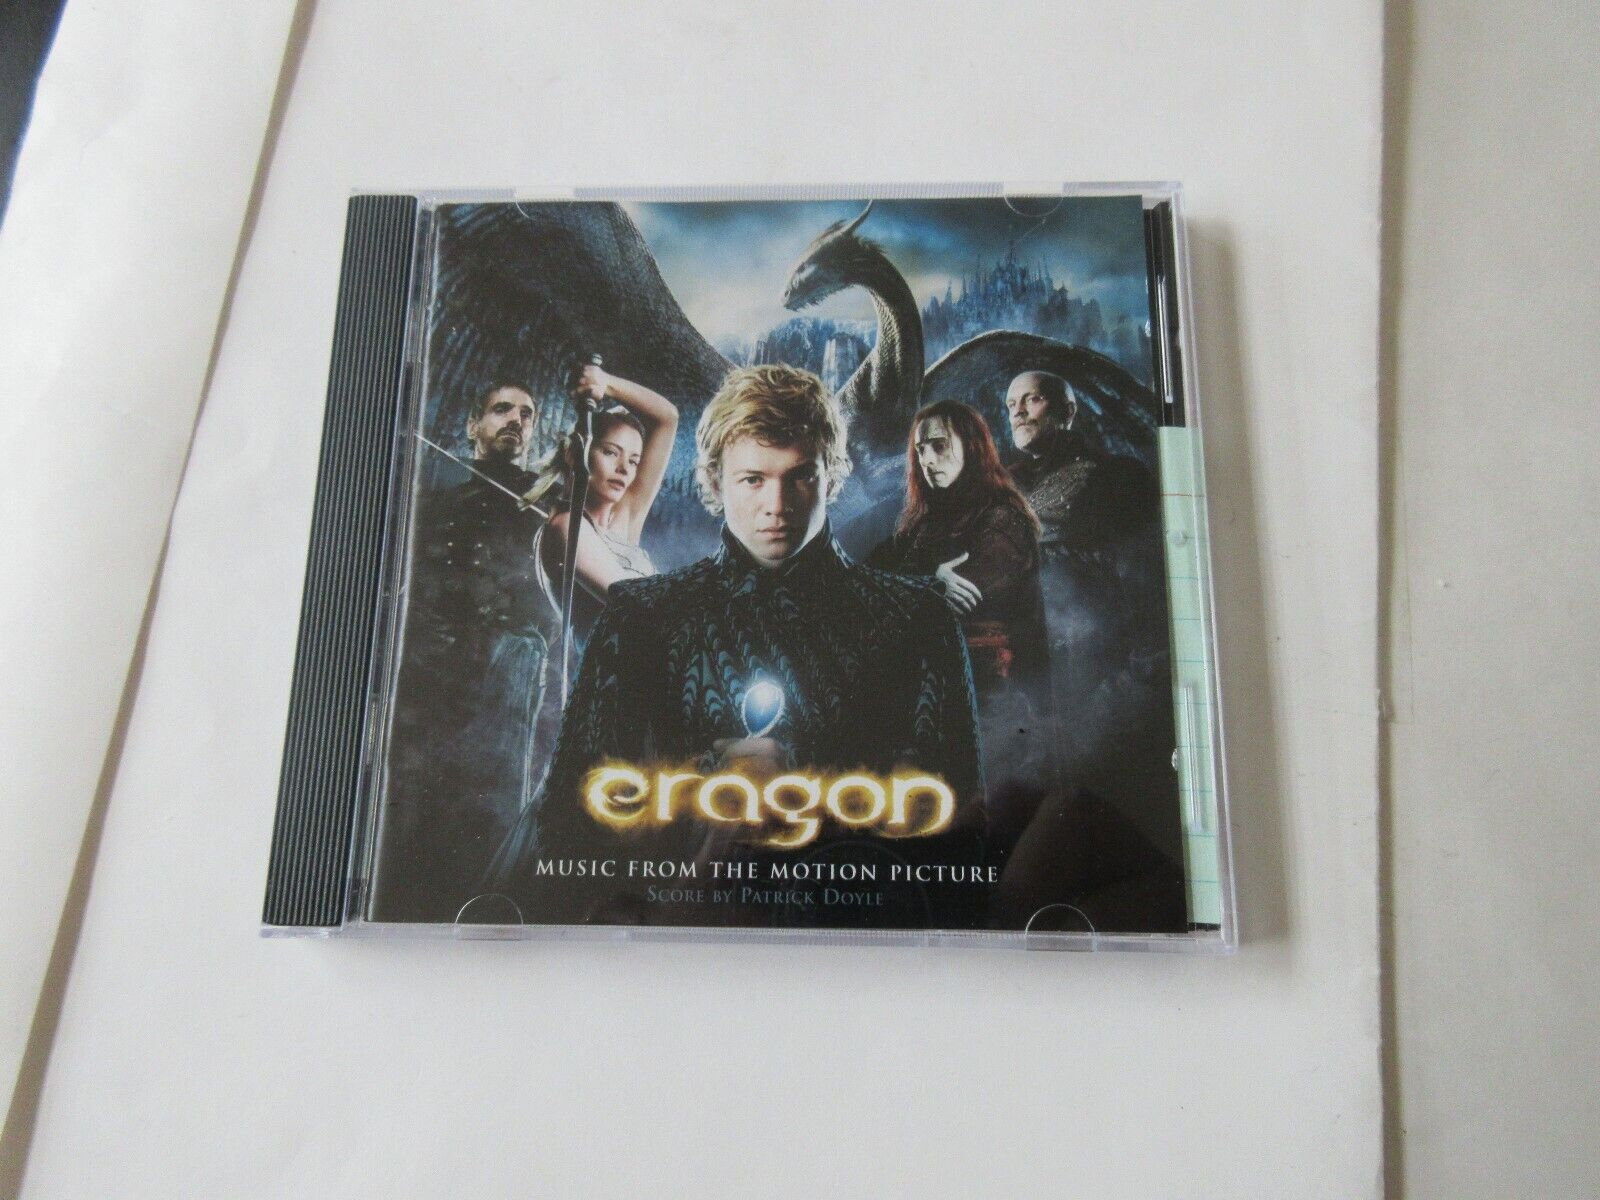 Eragon [Music from the Motion Picture] by Patrick Doyle